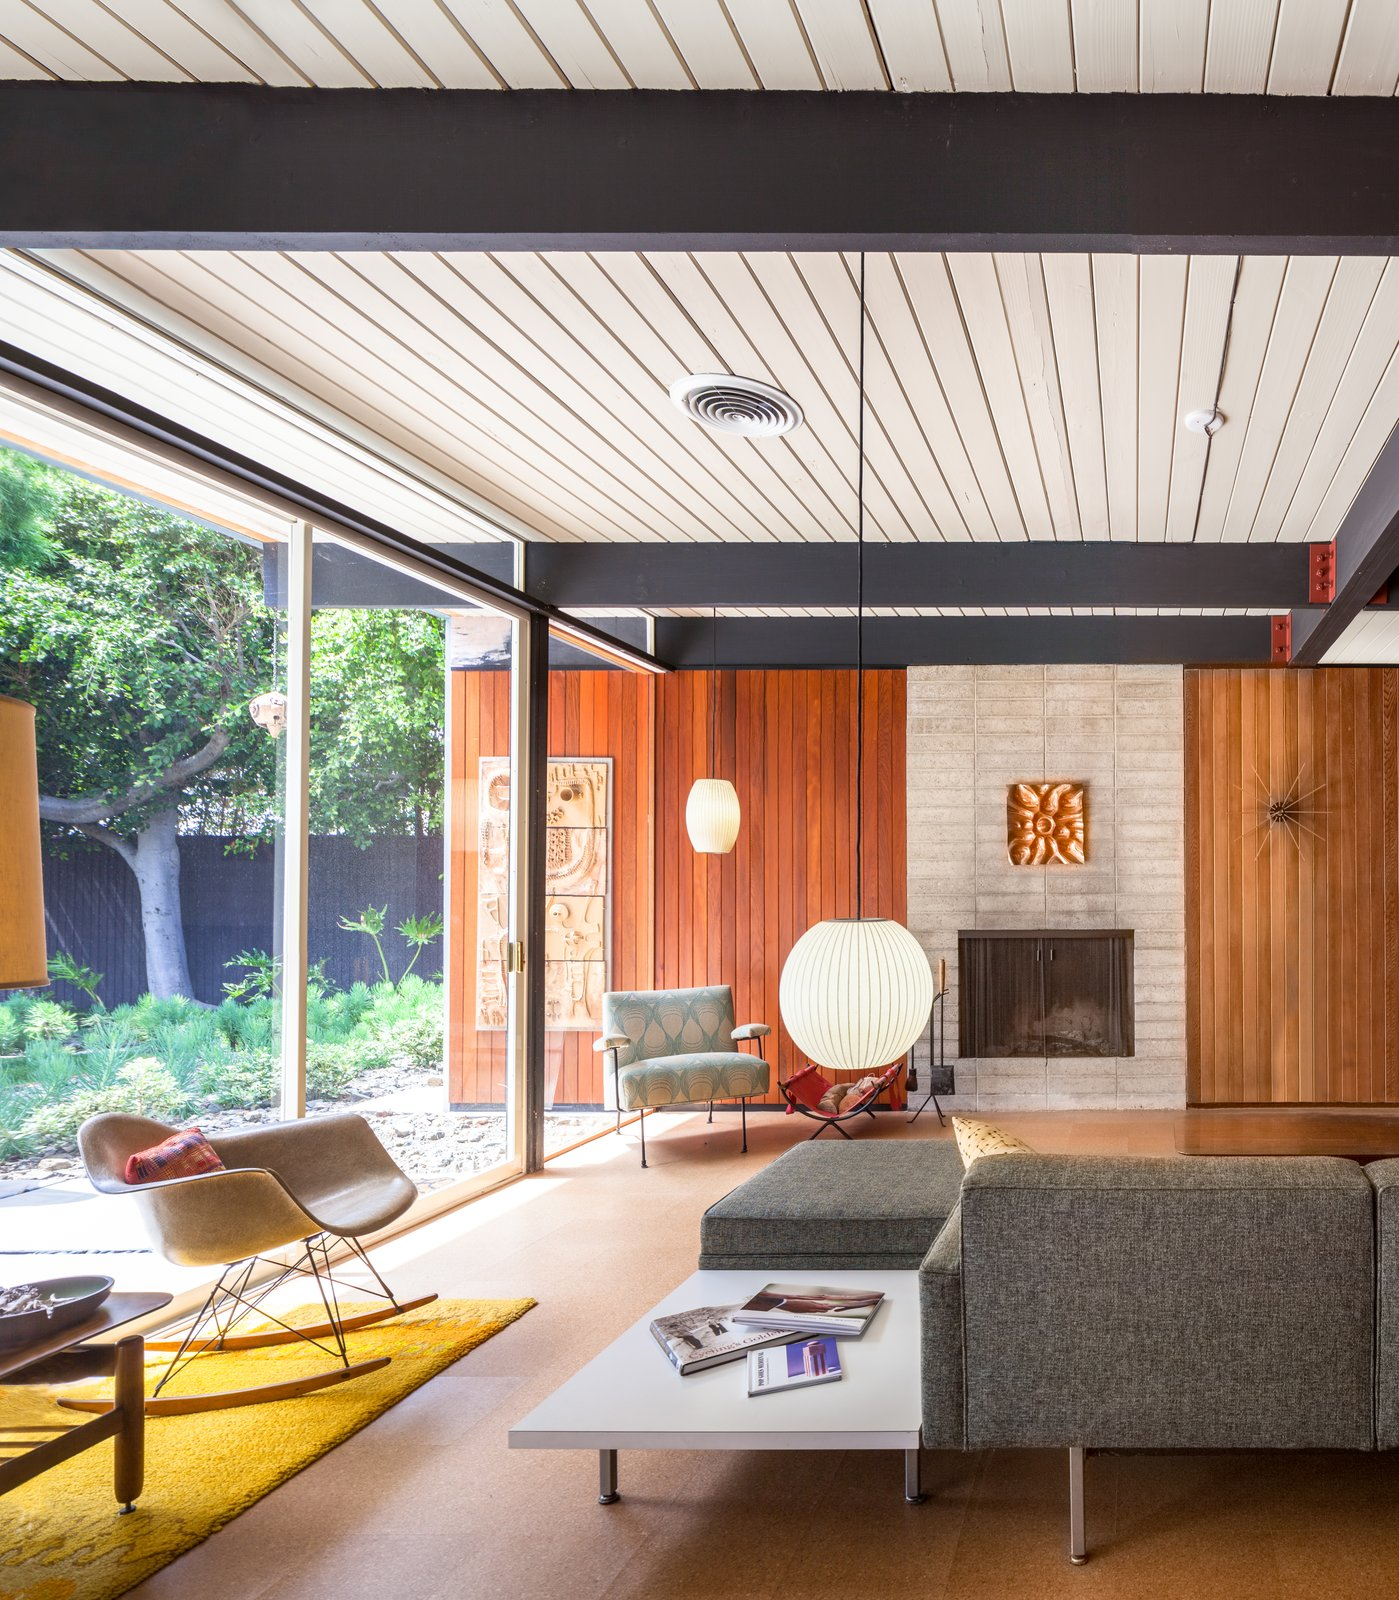 Living Room, Sofa, End Tables, Chair, Pendant Lighting, Cork Floor, and Standard Layout Fireplace  Best Photos from A Stunningly Restored Midcentury by Case Study Architect Craig Ellwood Asks $800K in San Diego